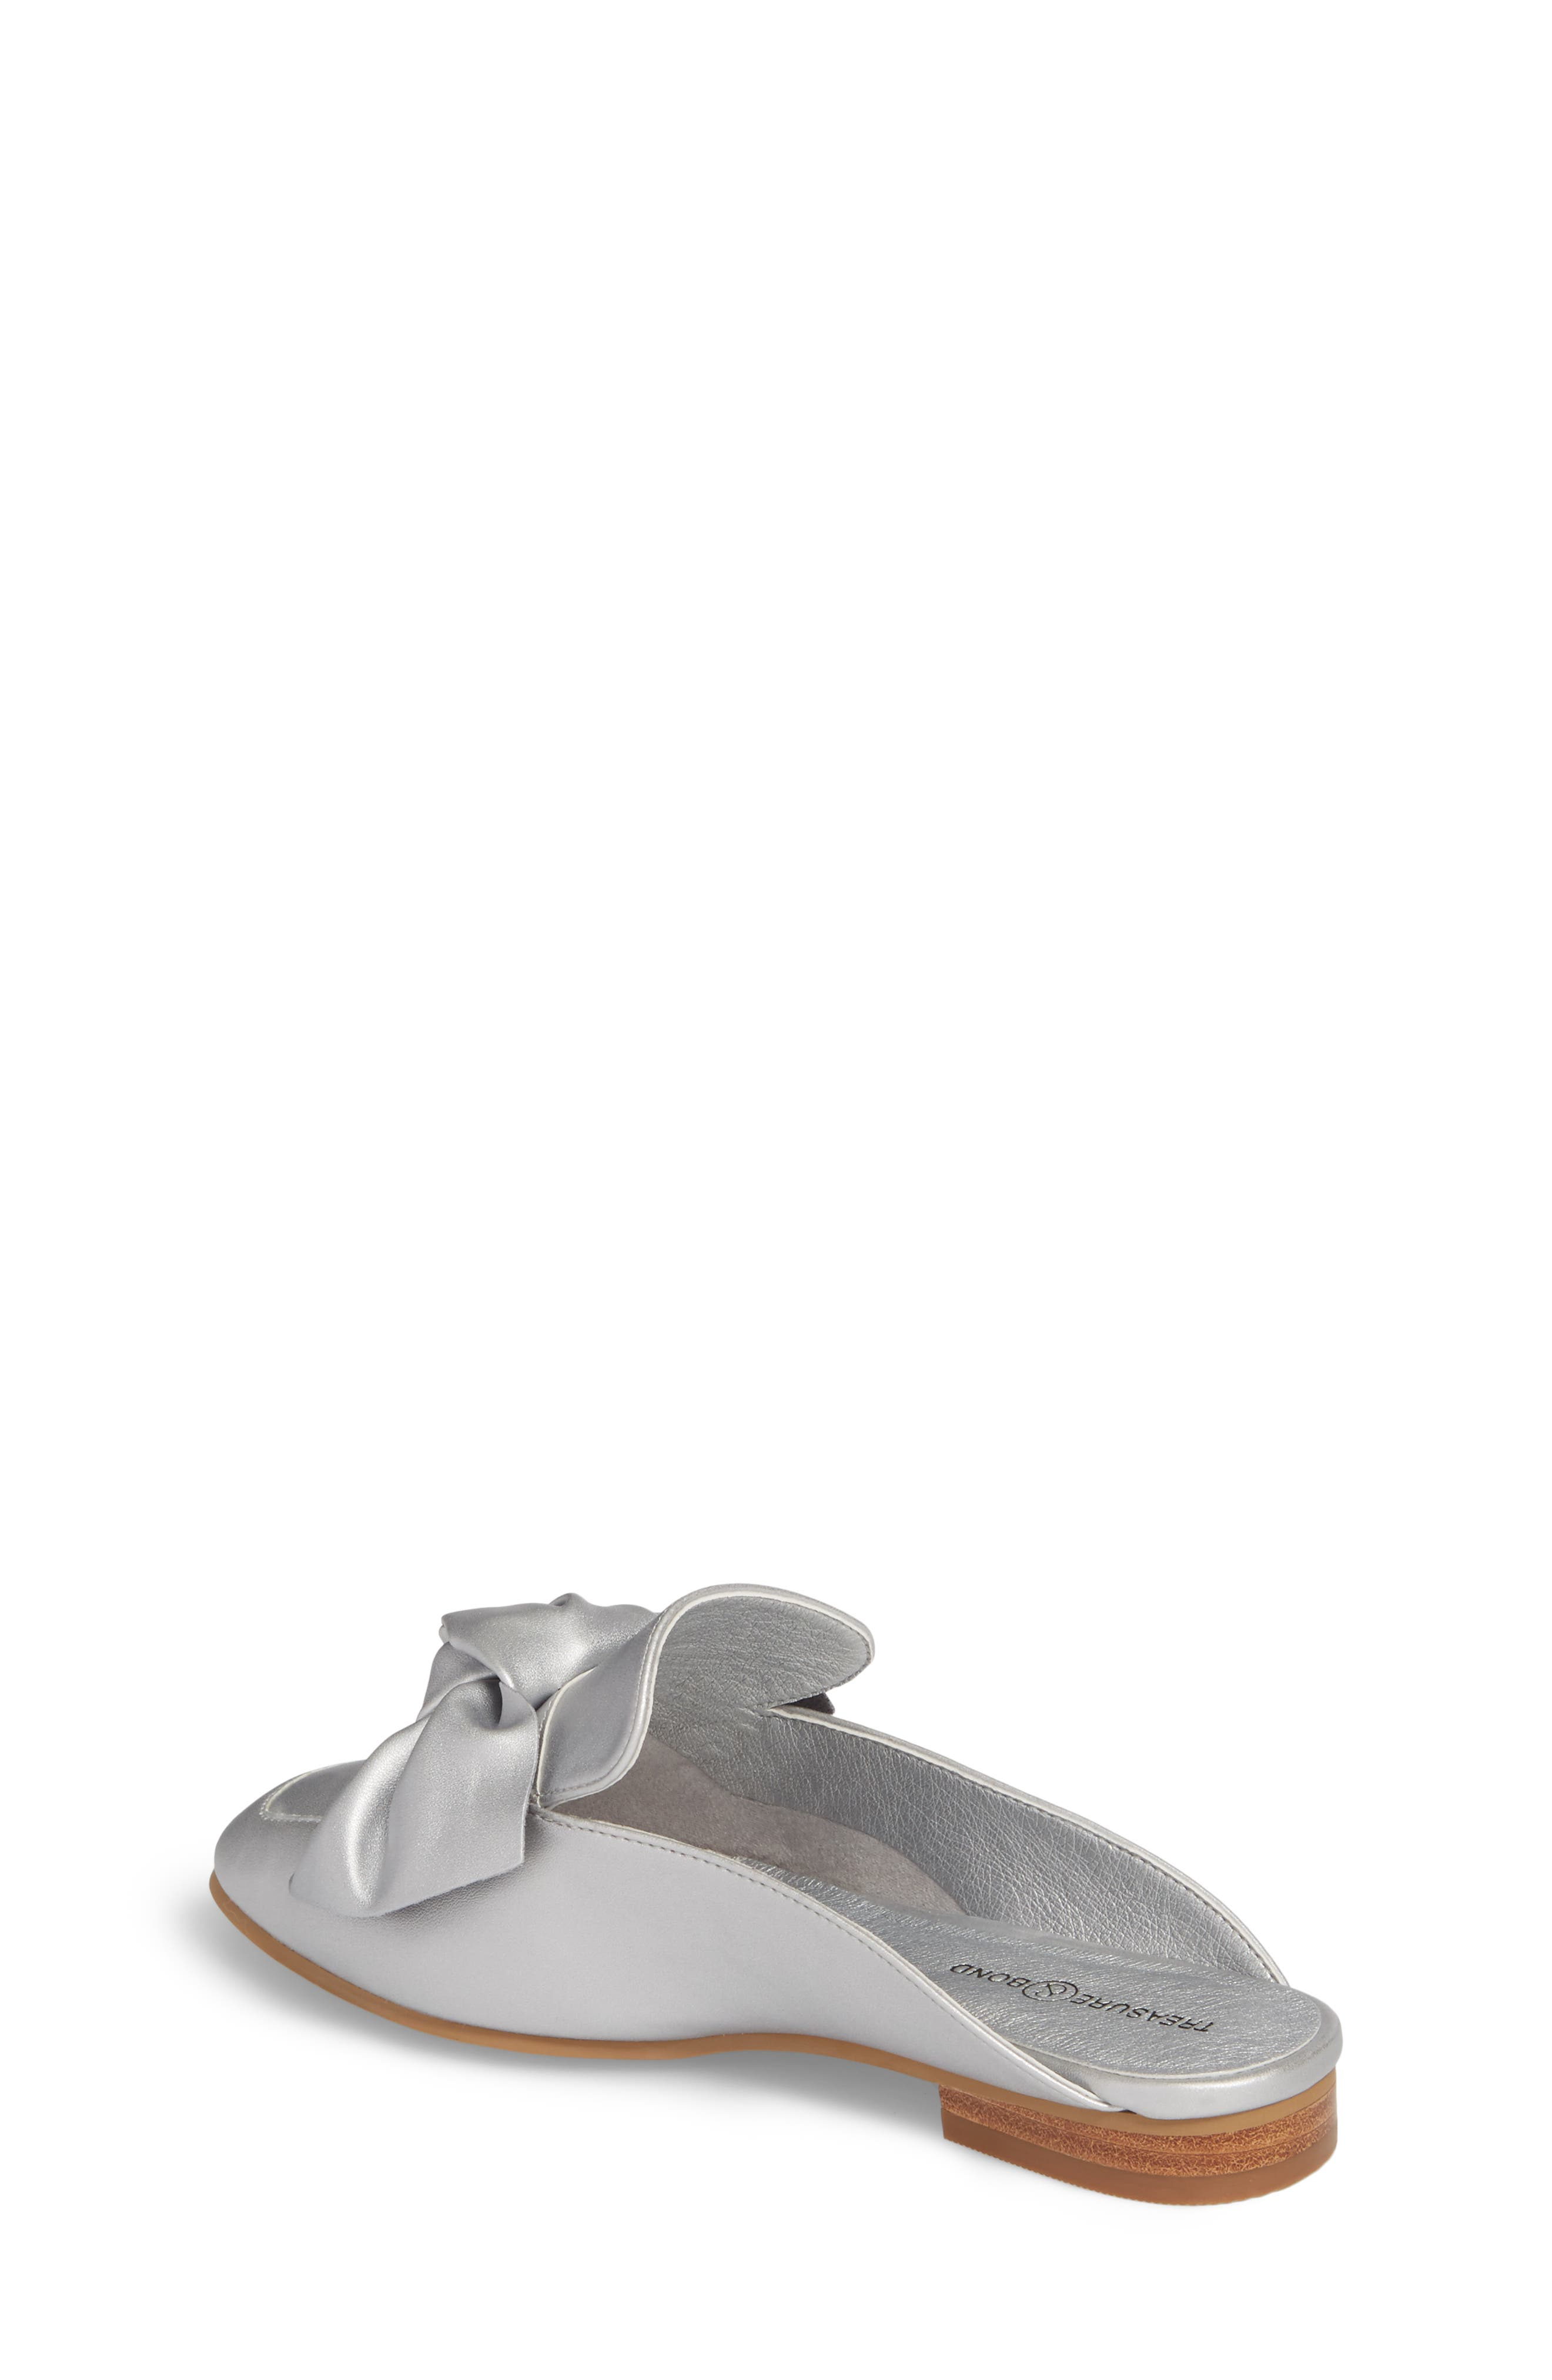 Gina Knotted Loafer Mule,                             Alternate thumbnail 2, color,                             Silver Faux Leather